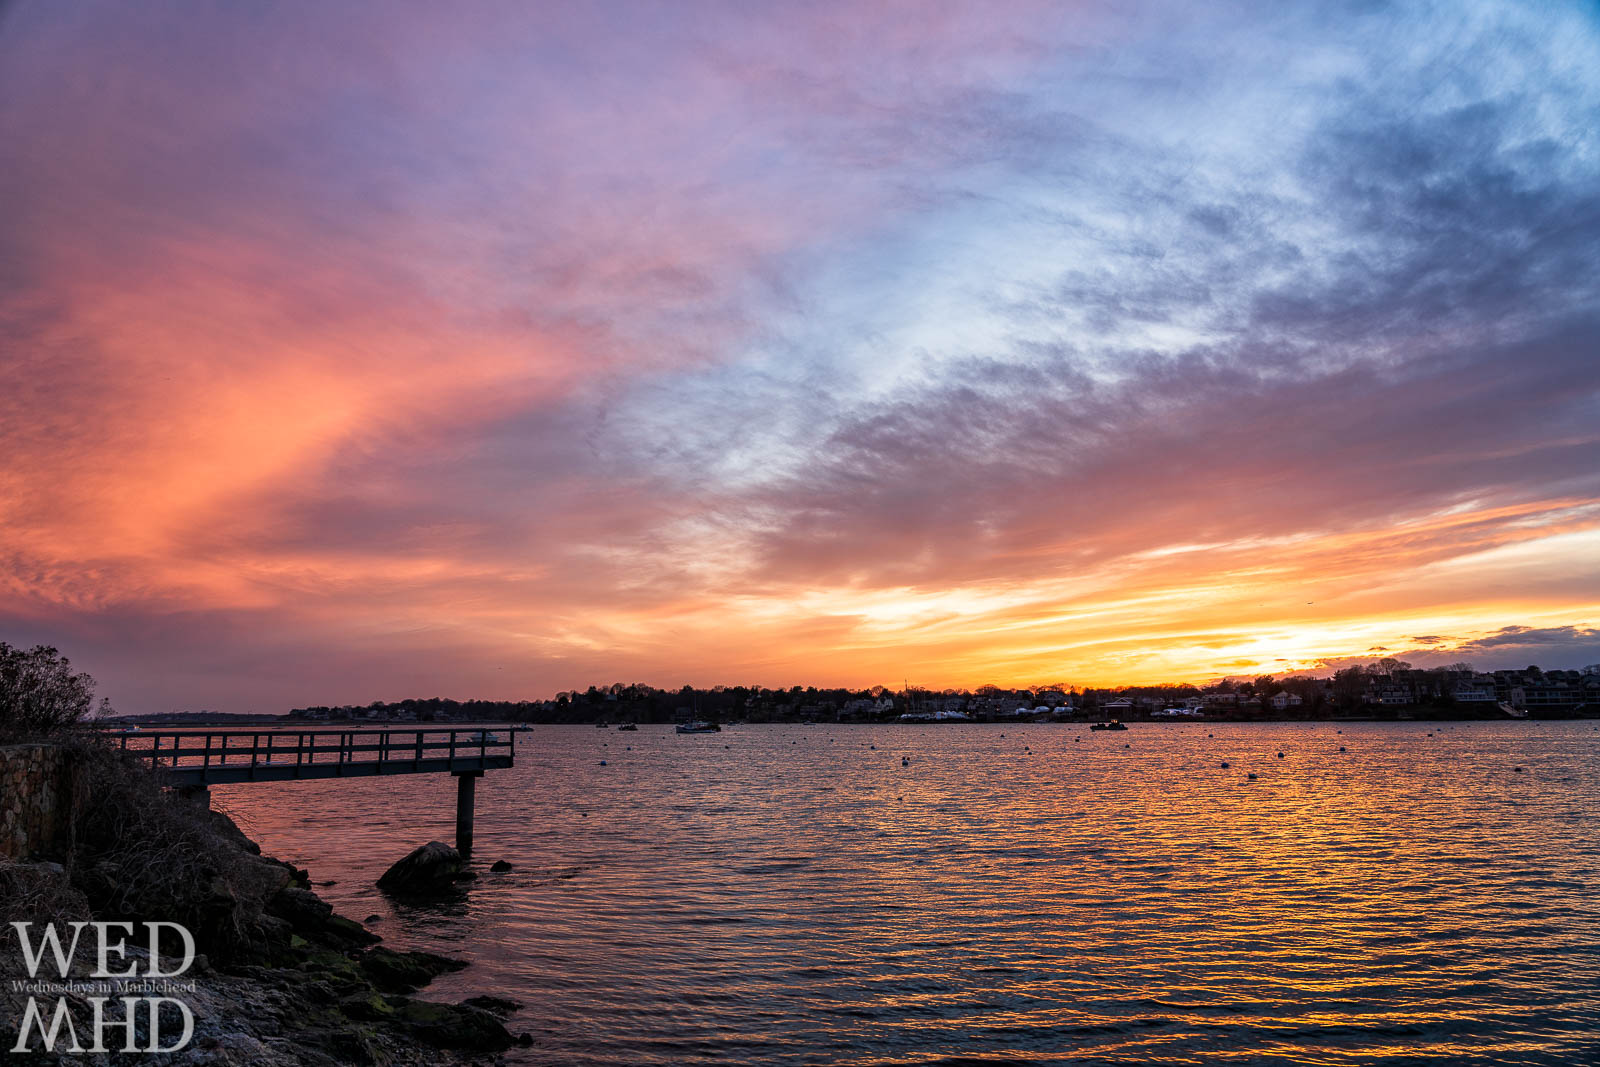 Spring sunsets take place over an empty Marblehead harbor as in this image from Parker Lane with a nearby pier surrounded by light